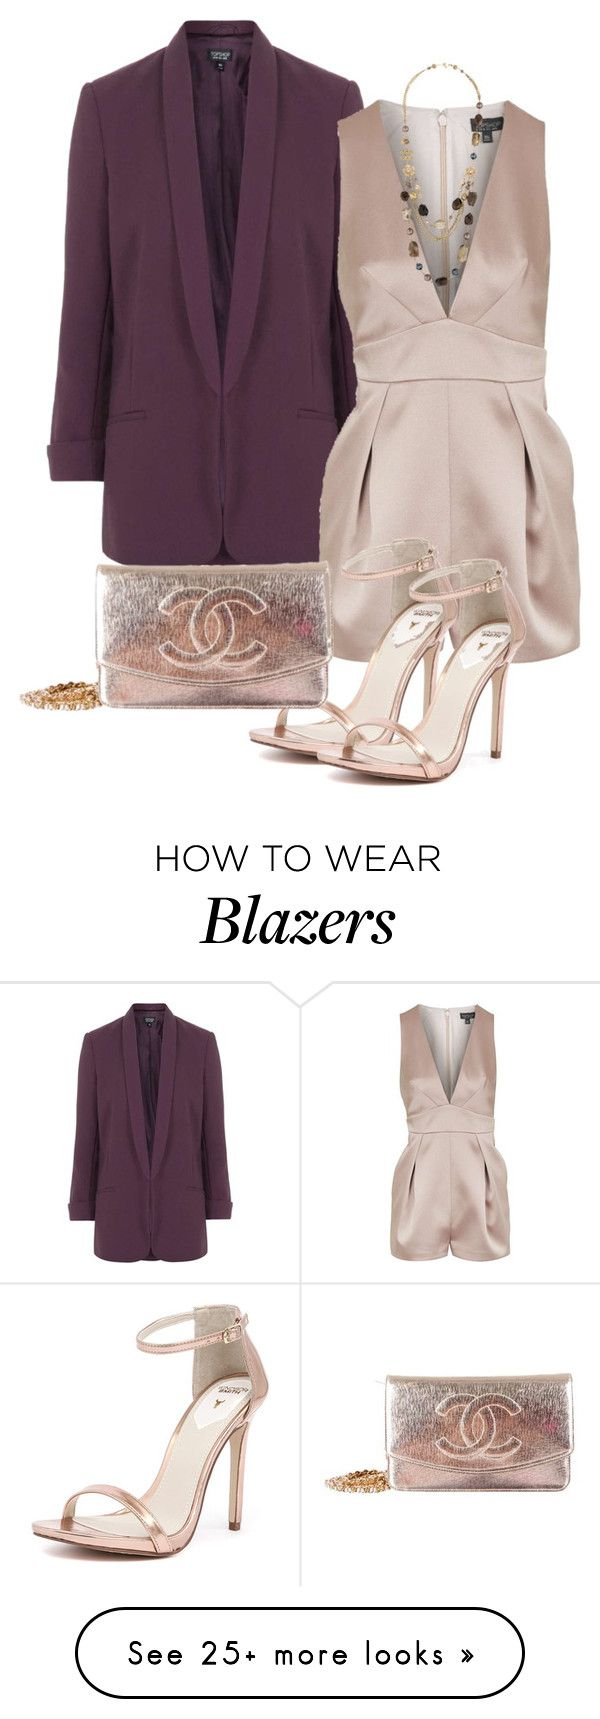 """""""Untitled #400"""" by pinkpeony21 on Polyvore featuring Topshop, Windsor Smith and Chanel"""